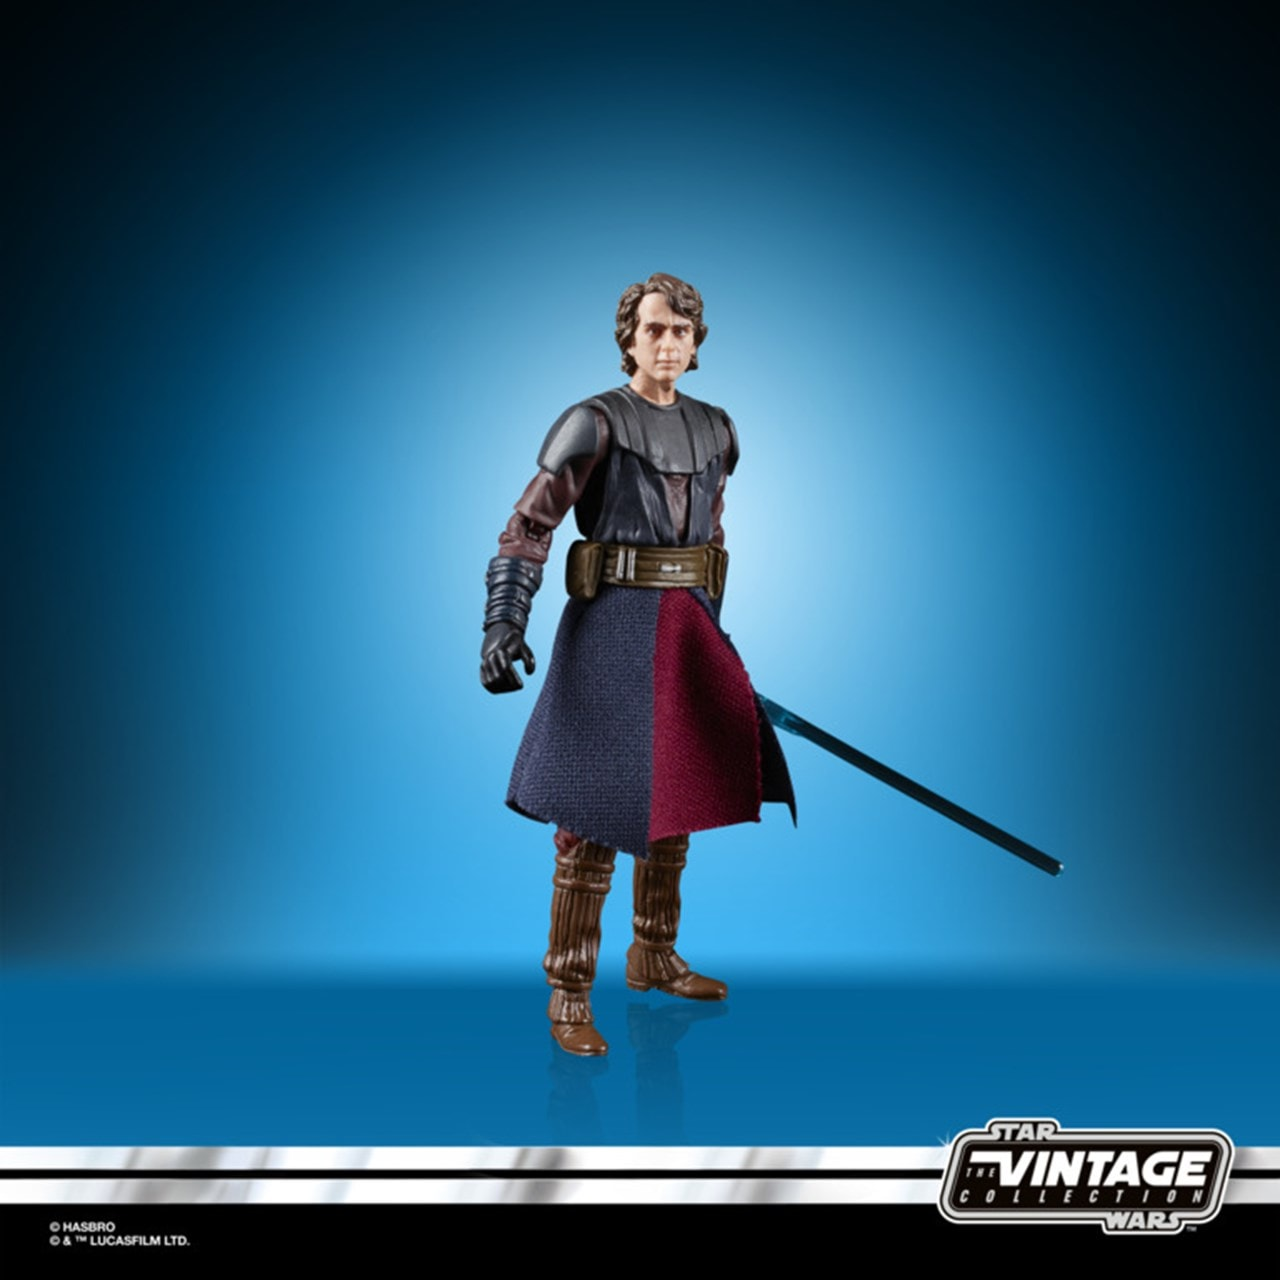 Anakin Skywalker: Clone Wars: Star Wars Vintage Action Figure - 1